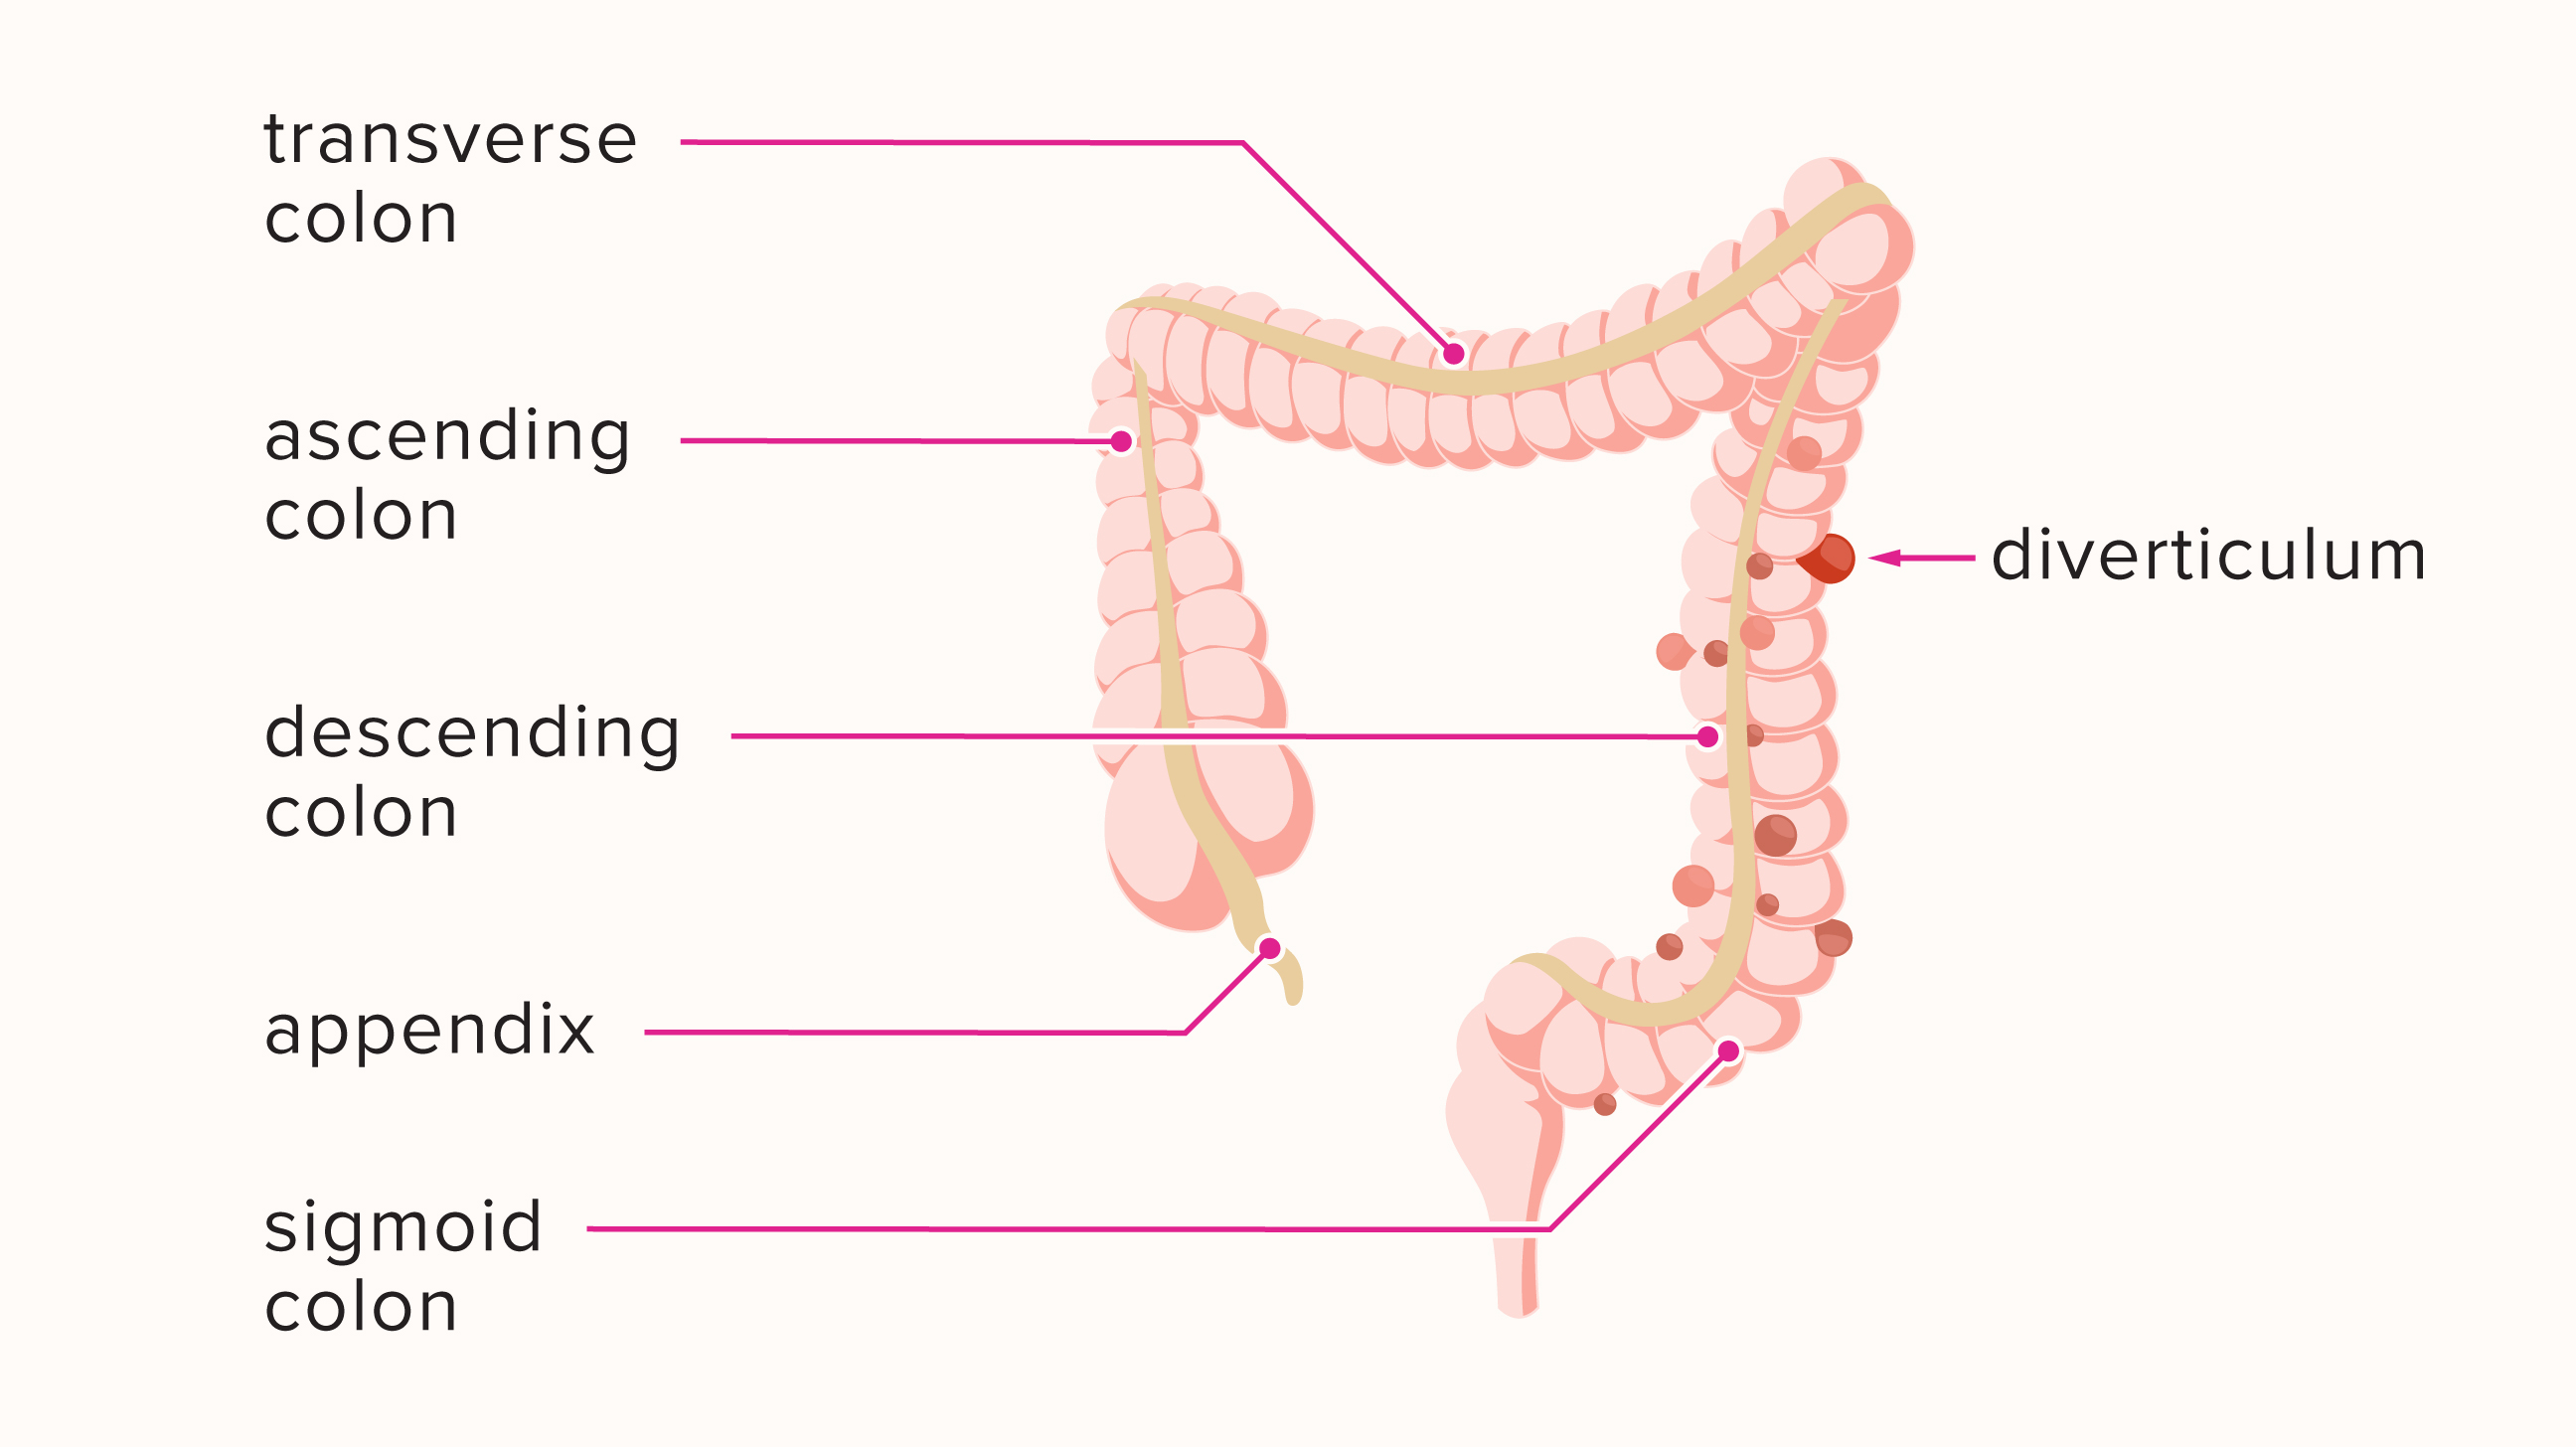 what does severe diverticular disease mean